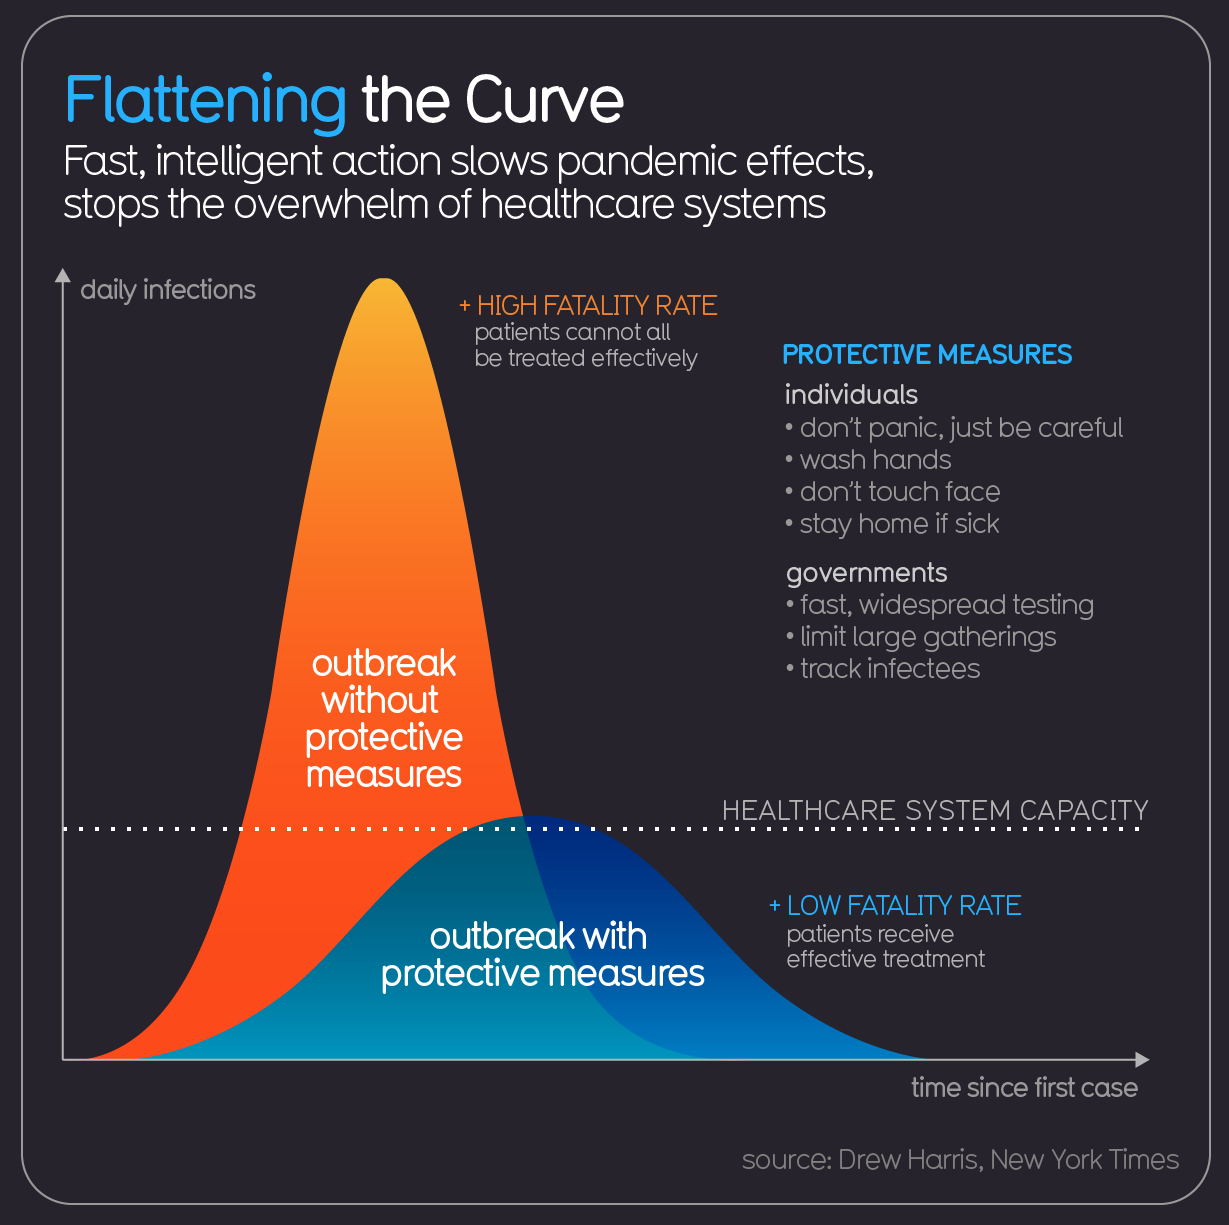 Flatten the curve. David Mccandless, Information is Beautiful, March 2020.